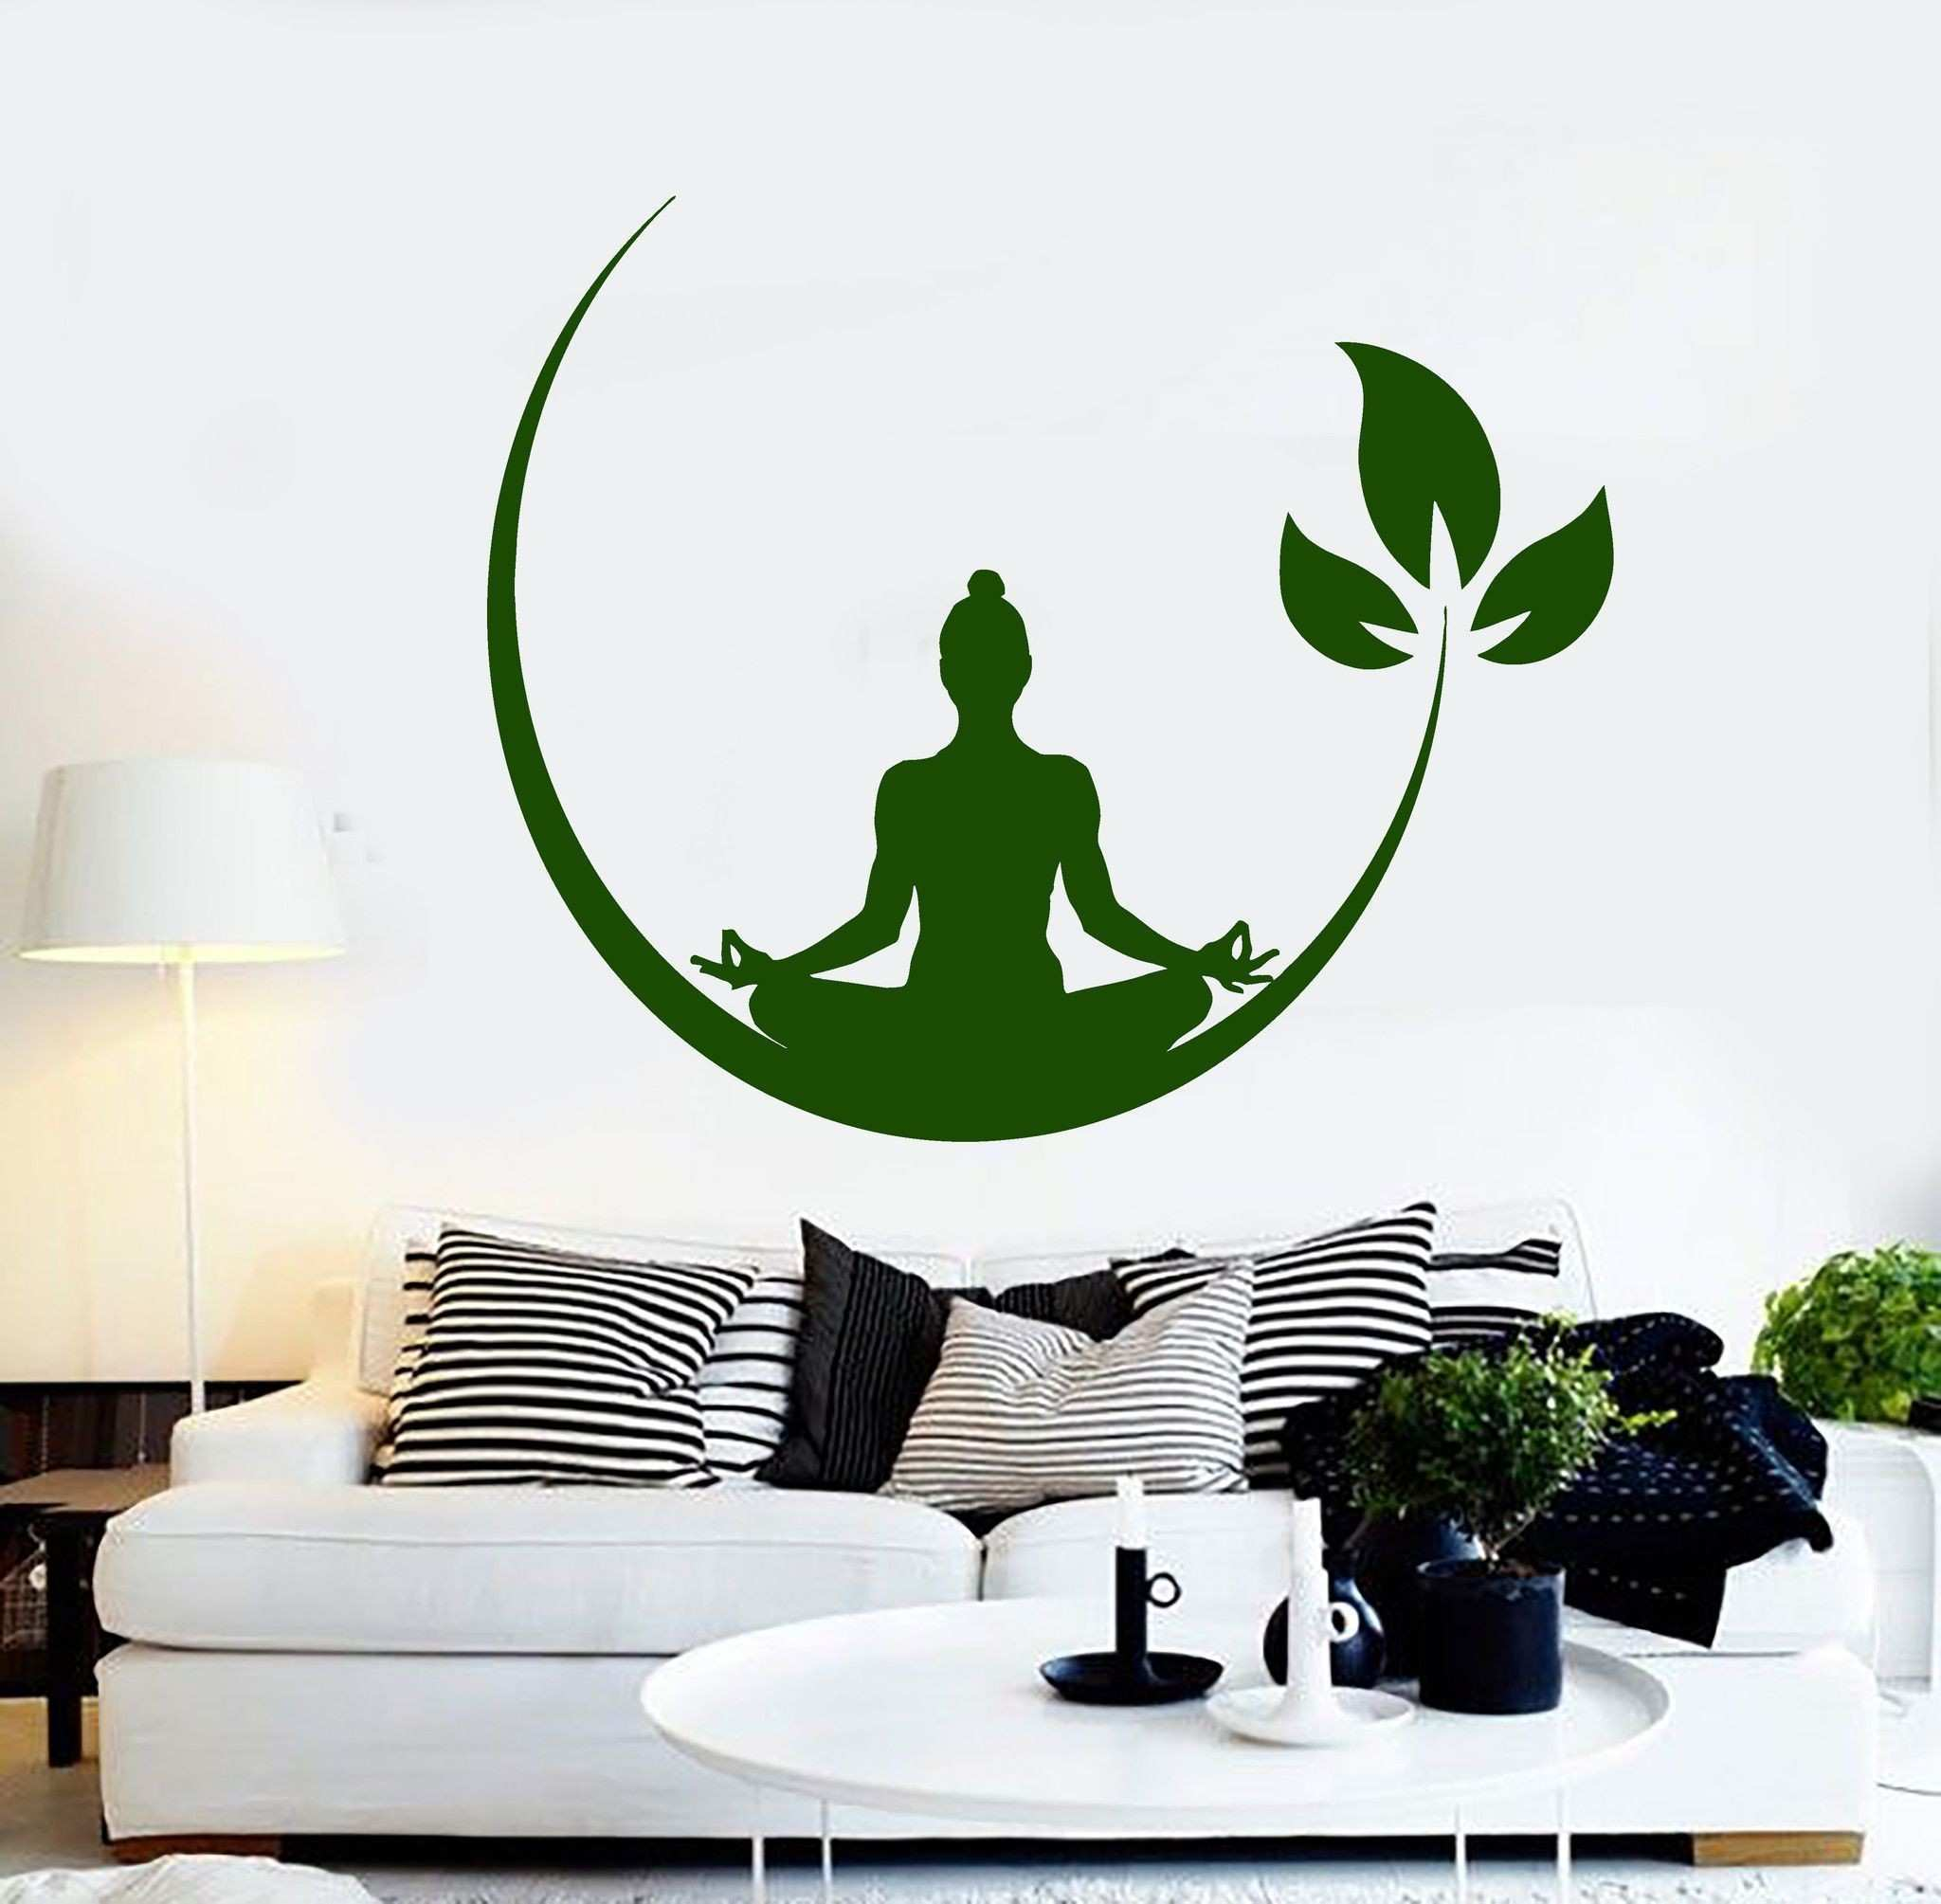 Vinyl Wall Decal Yoga Meditation Room Buddhist Zen Stickers Unique